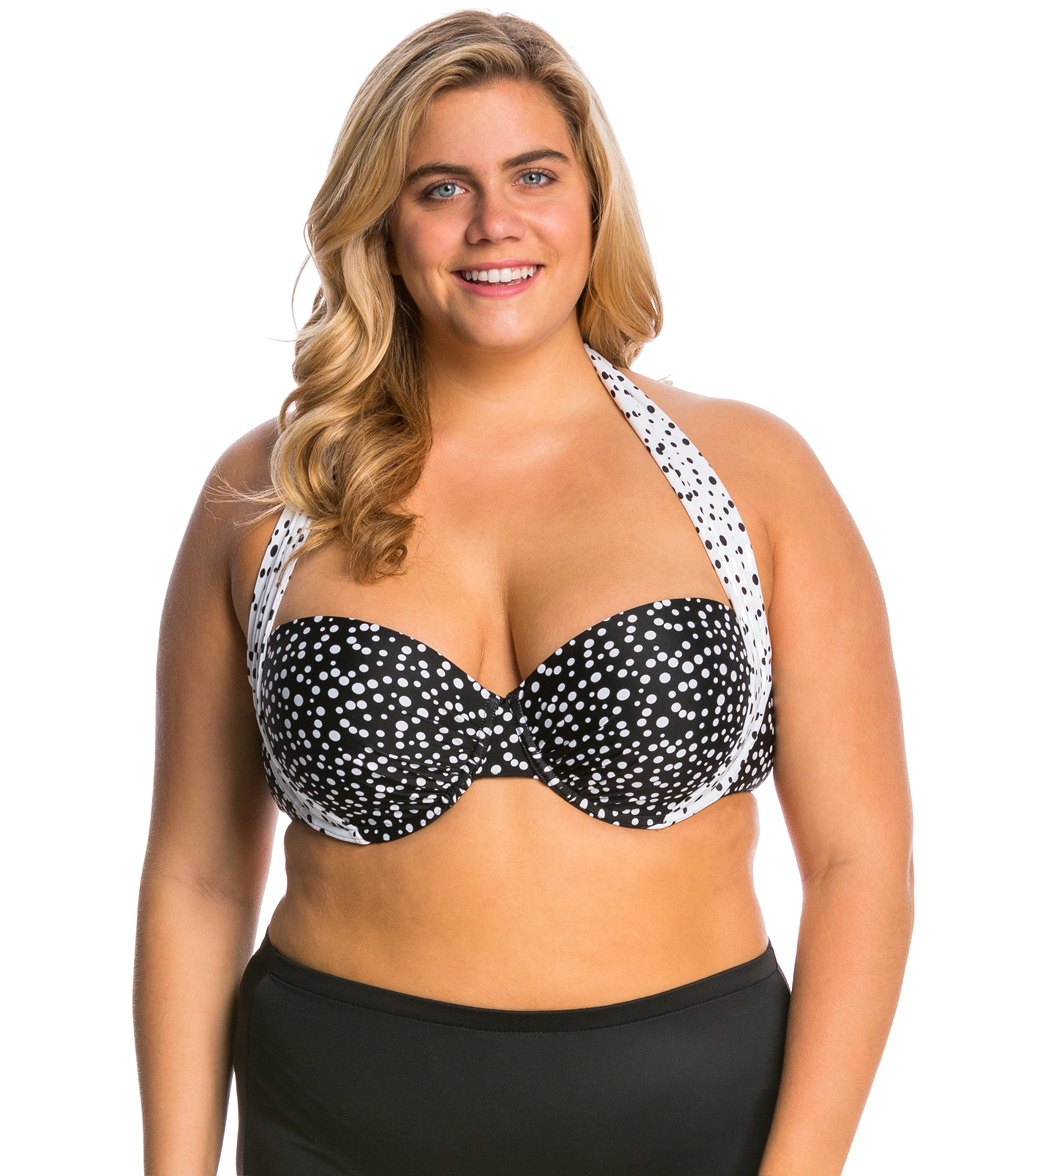 a9b2a7f08be Sunsets Plus Size Spot On Convertible Bikini Top (E F Cup) at ...